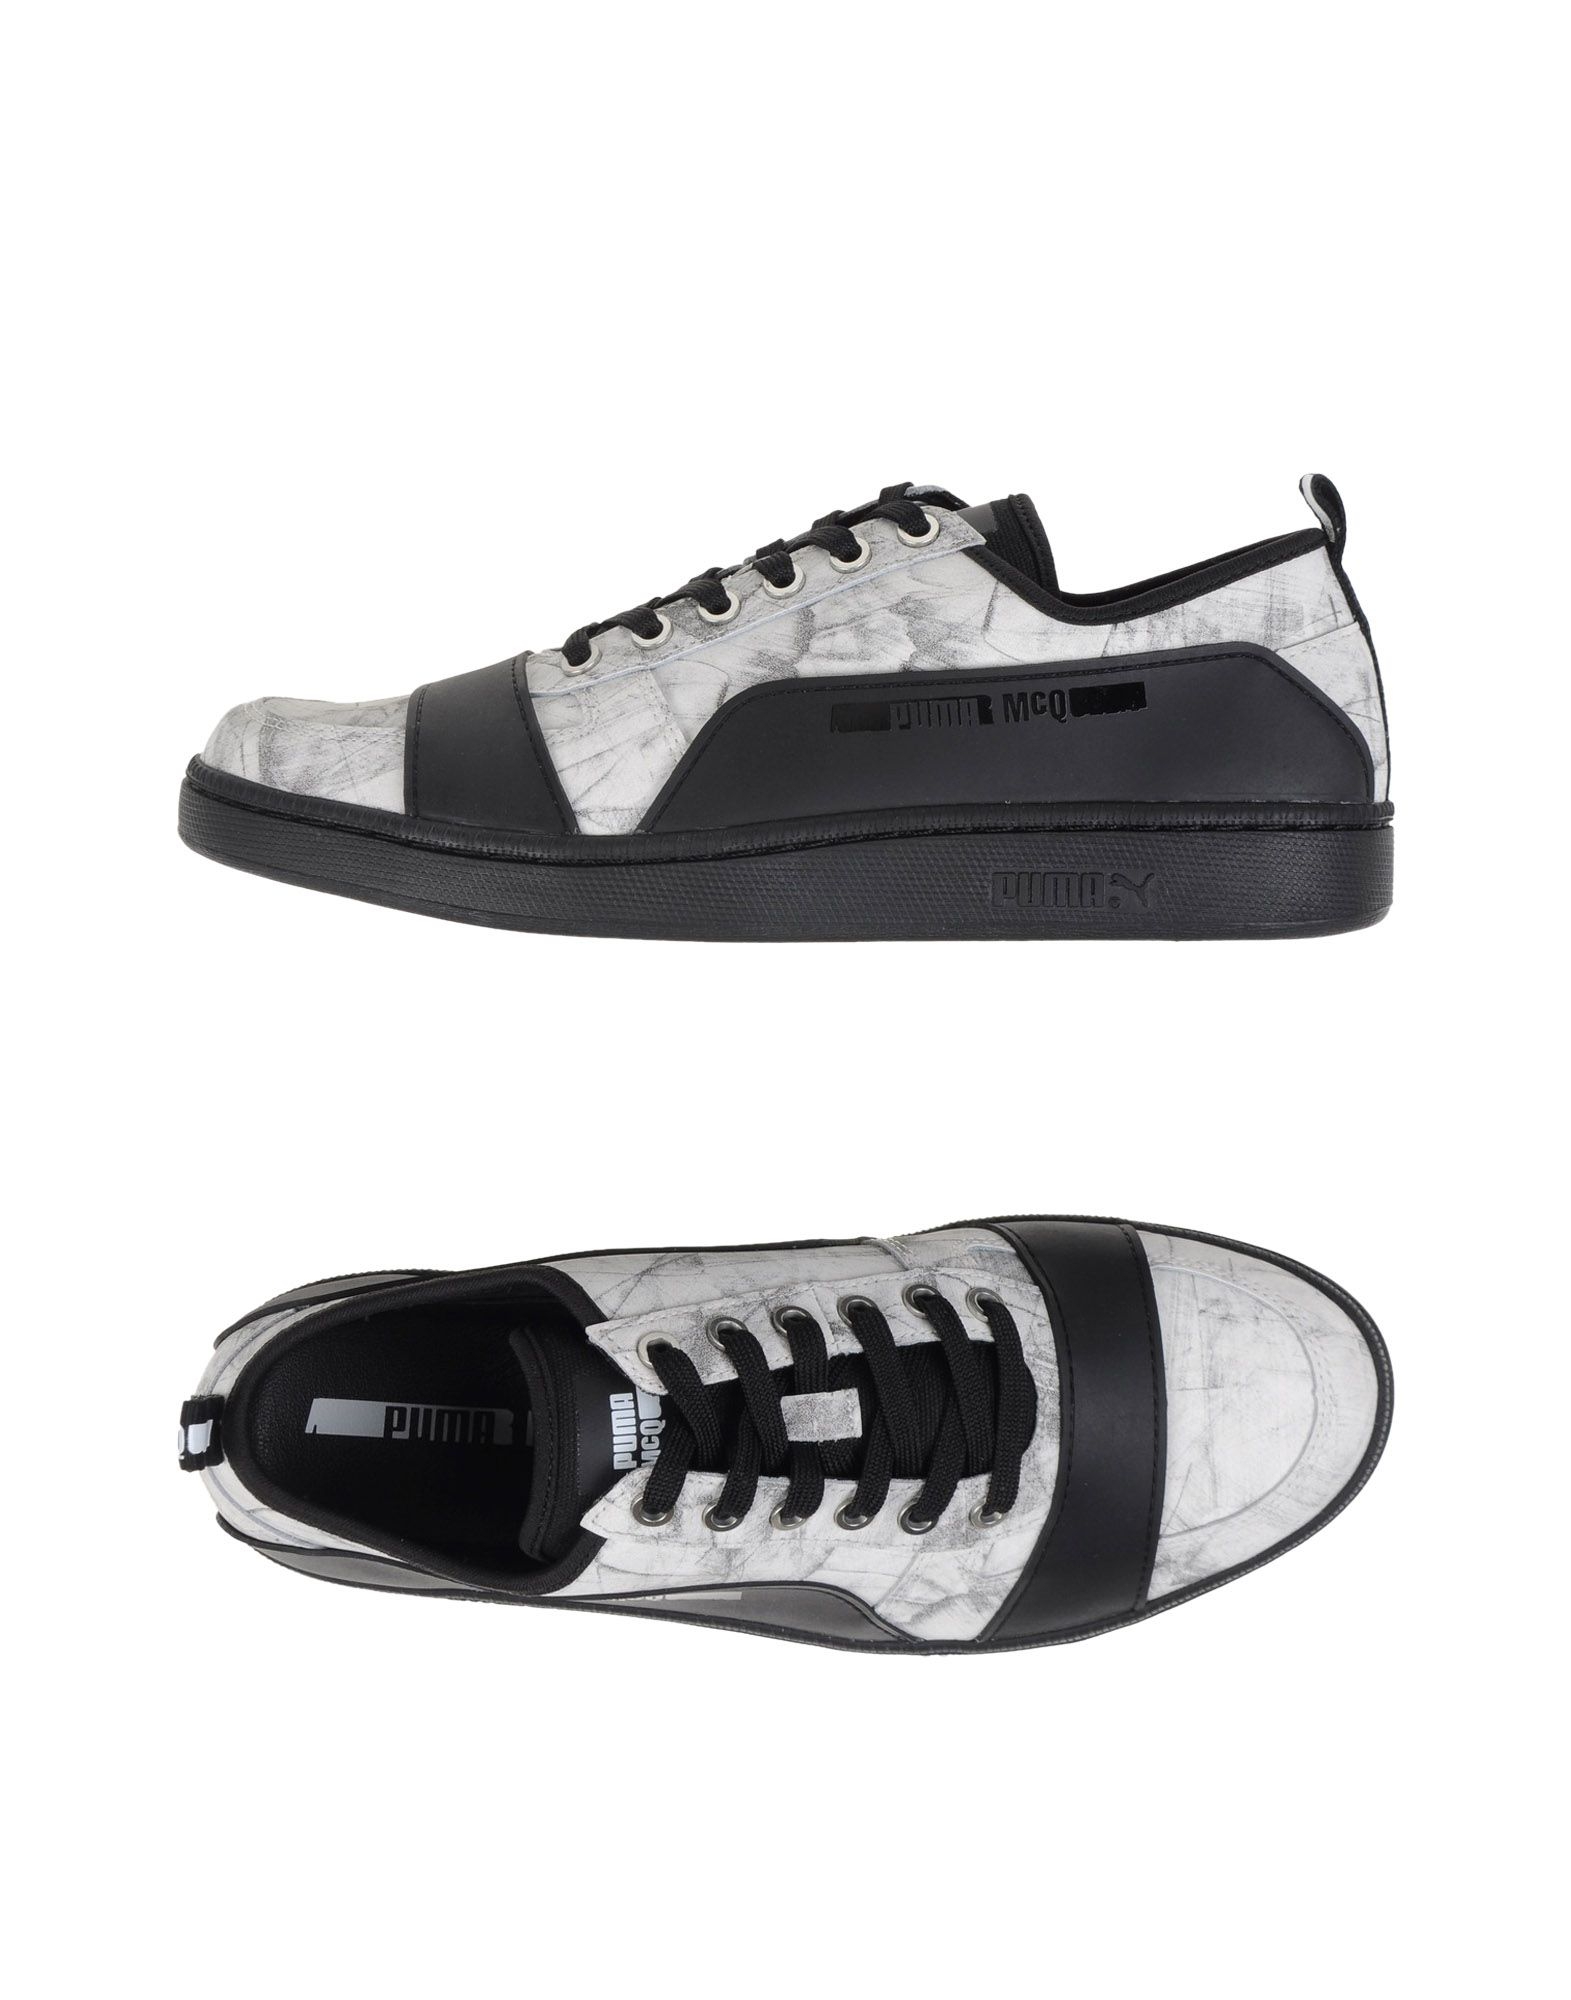 Sneakers Mcq Puma Mcq Serve Lo Graphic - Homme - Sneakers Mcq Puma sur